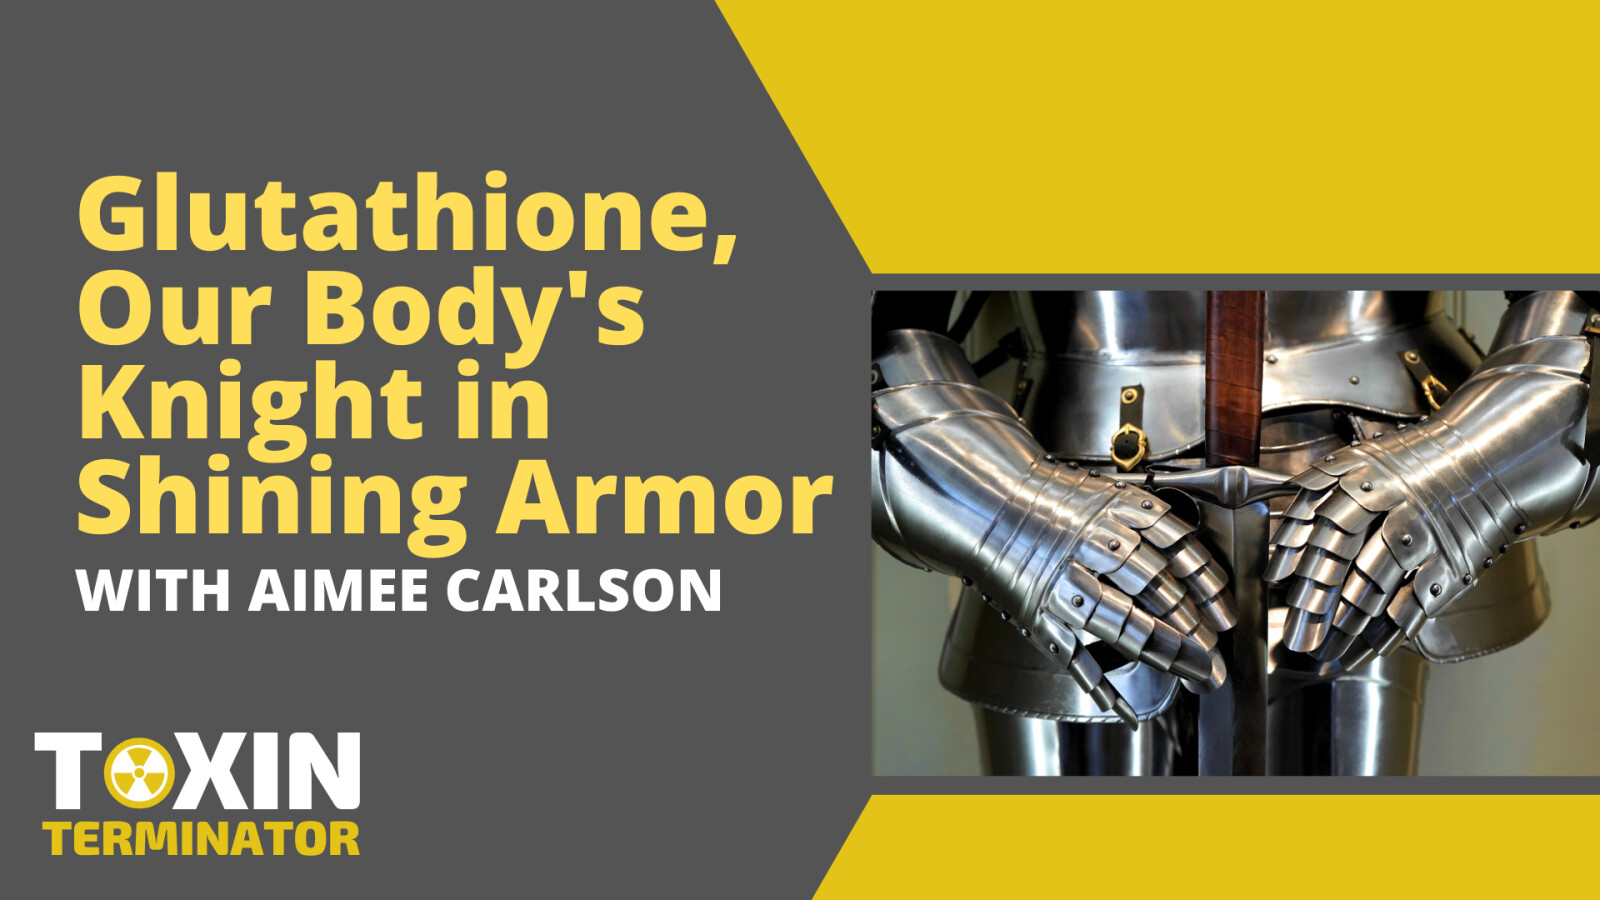 Glutathione, Our Body's Knight in Shining Armor